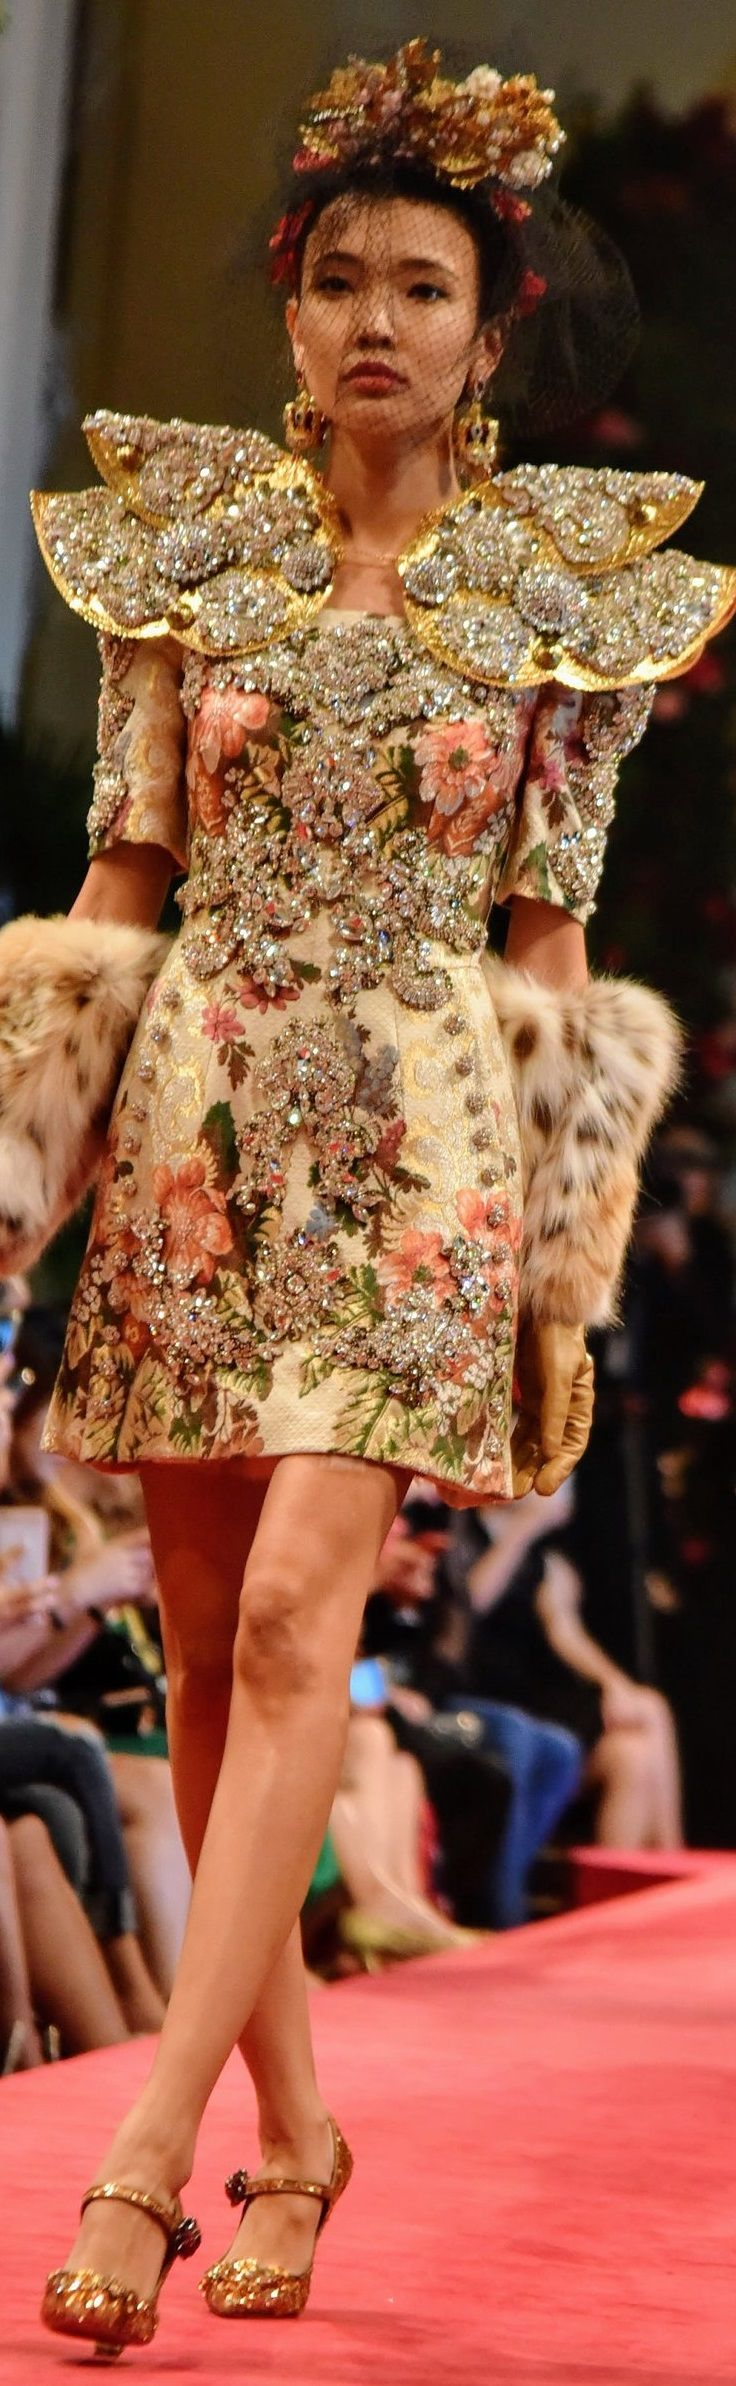 Dolce & Gabbana in Hong Kong Alta Moda Fall 2016